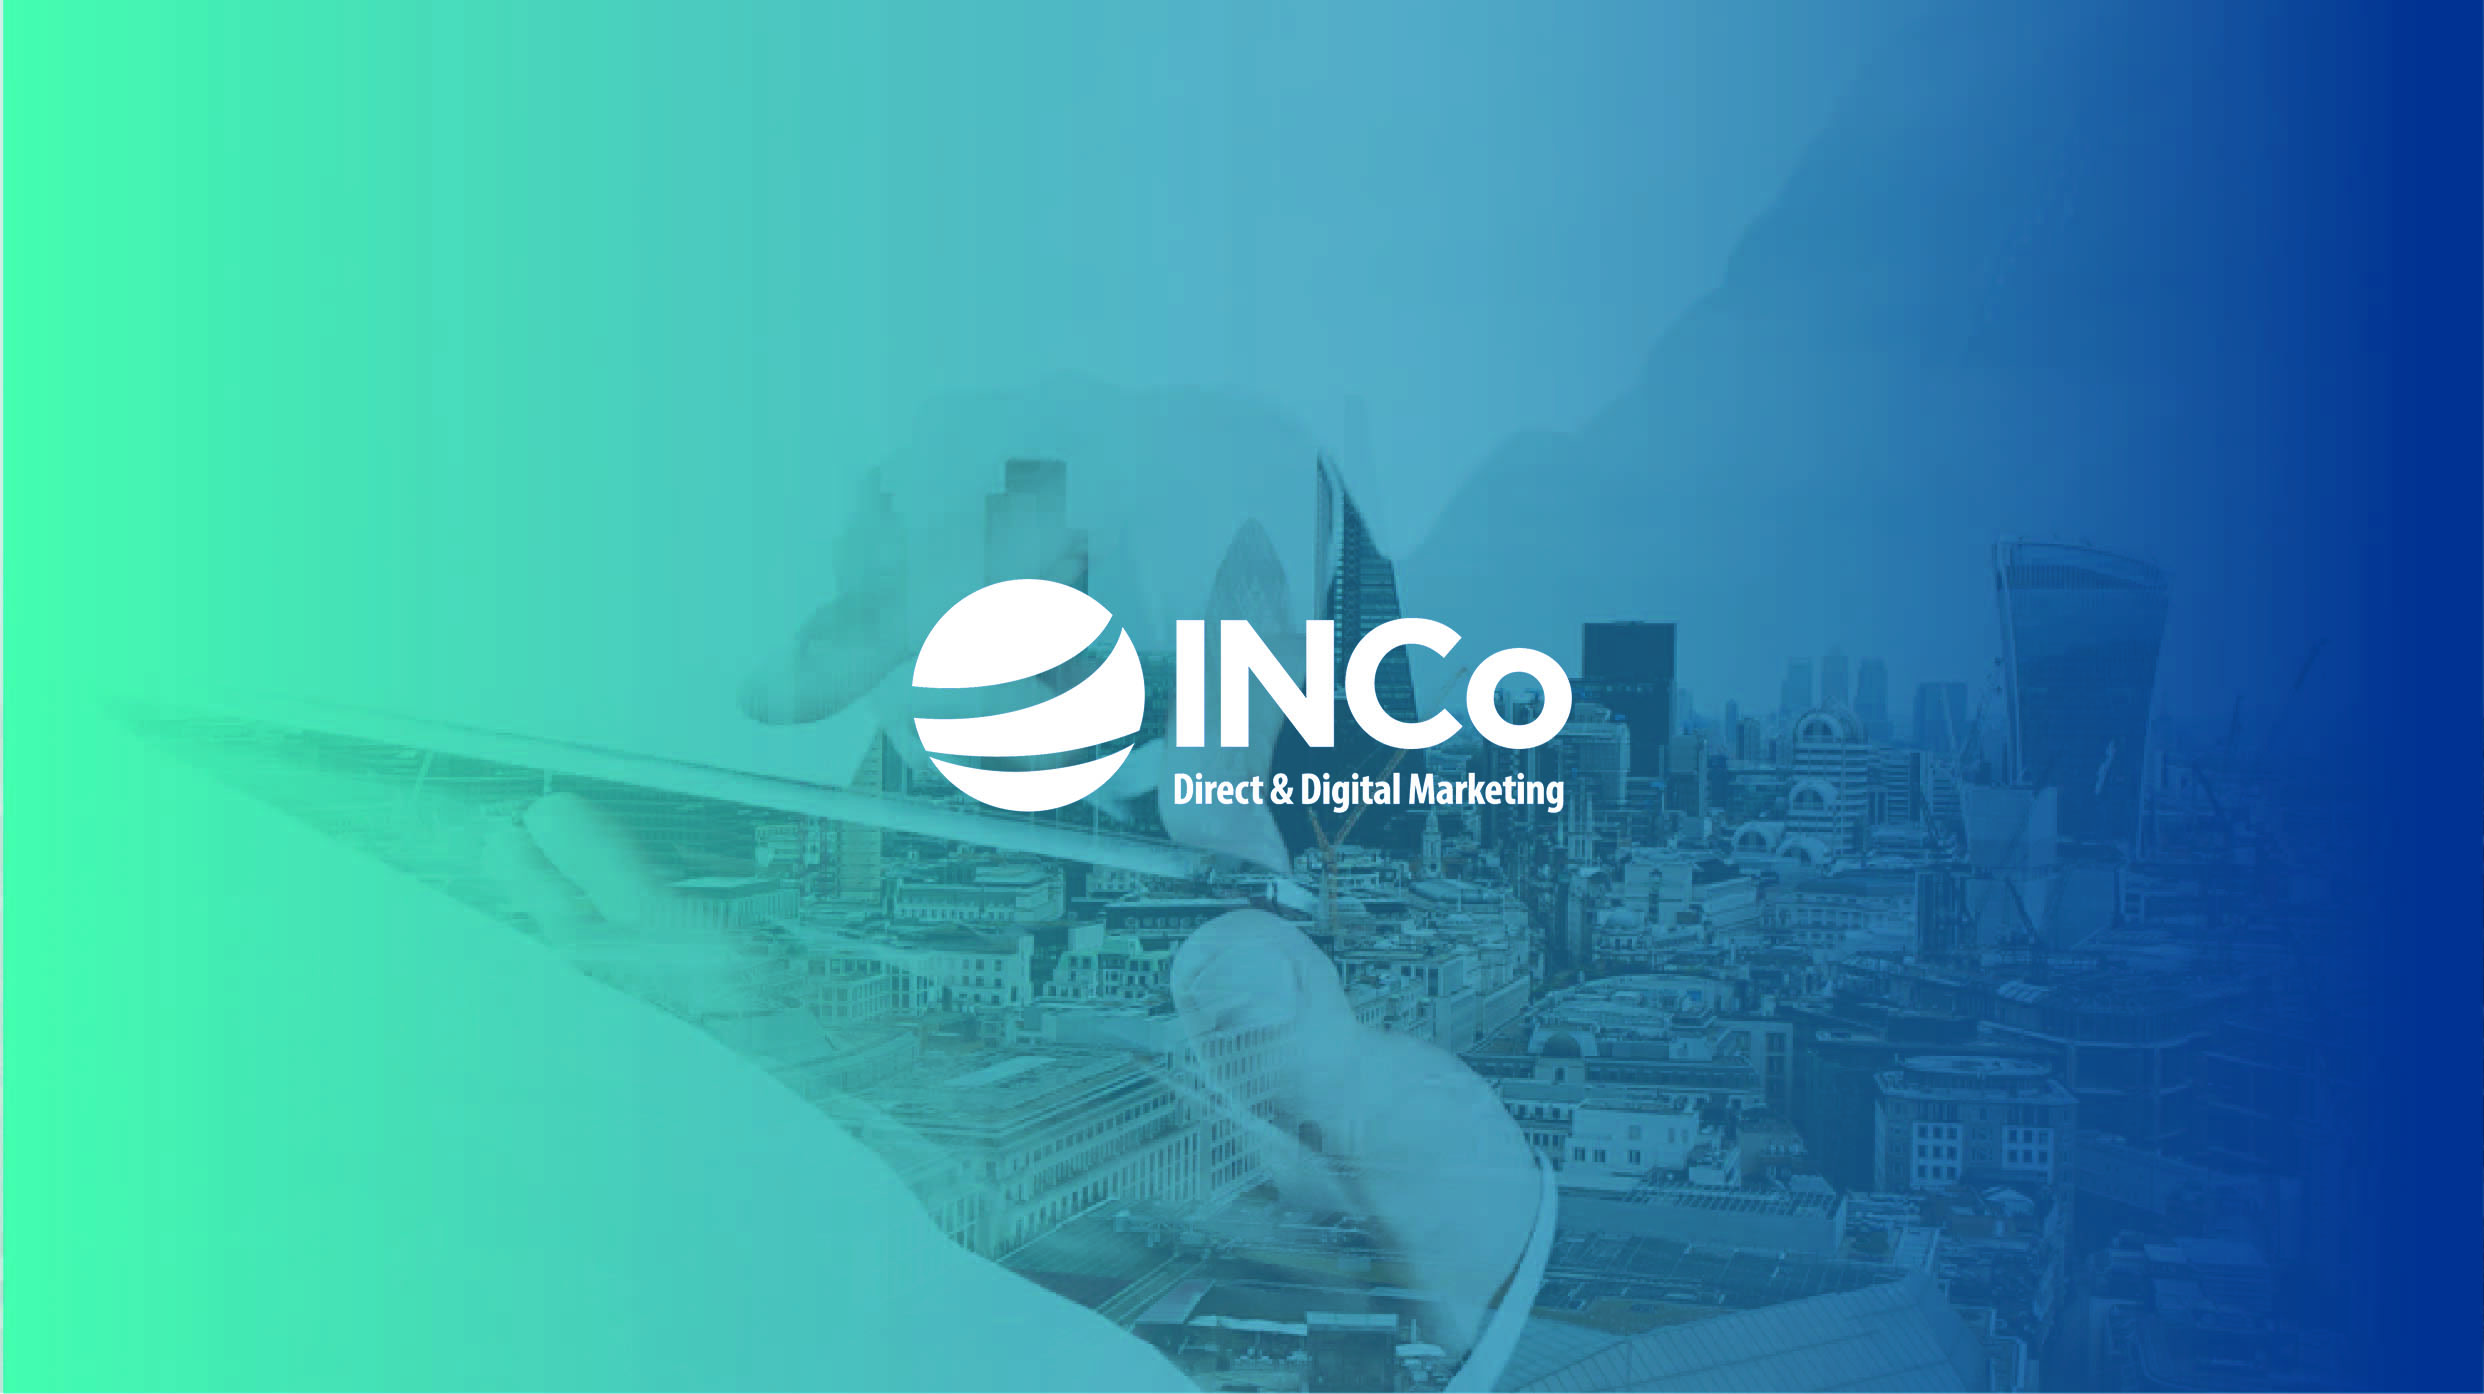 INCo-Picture-1-with-logo